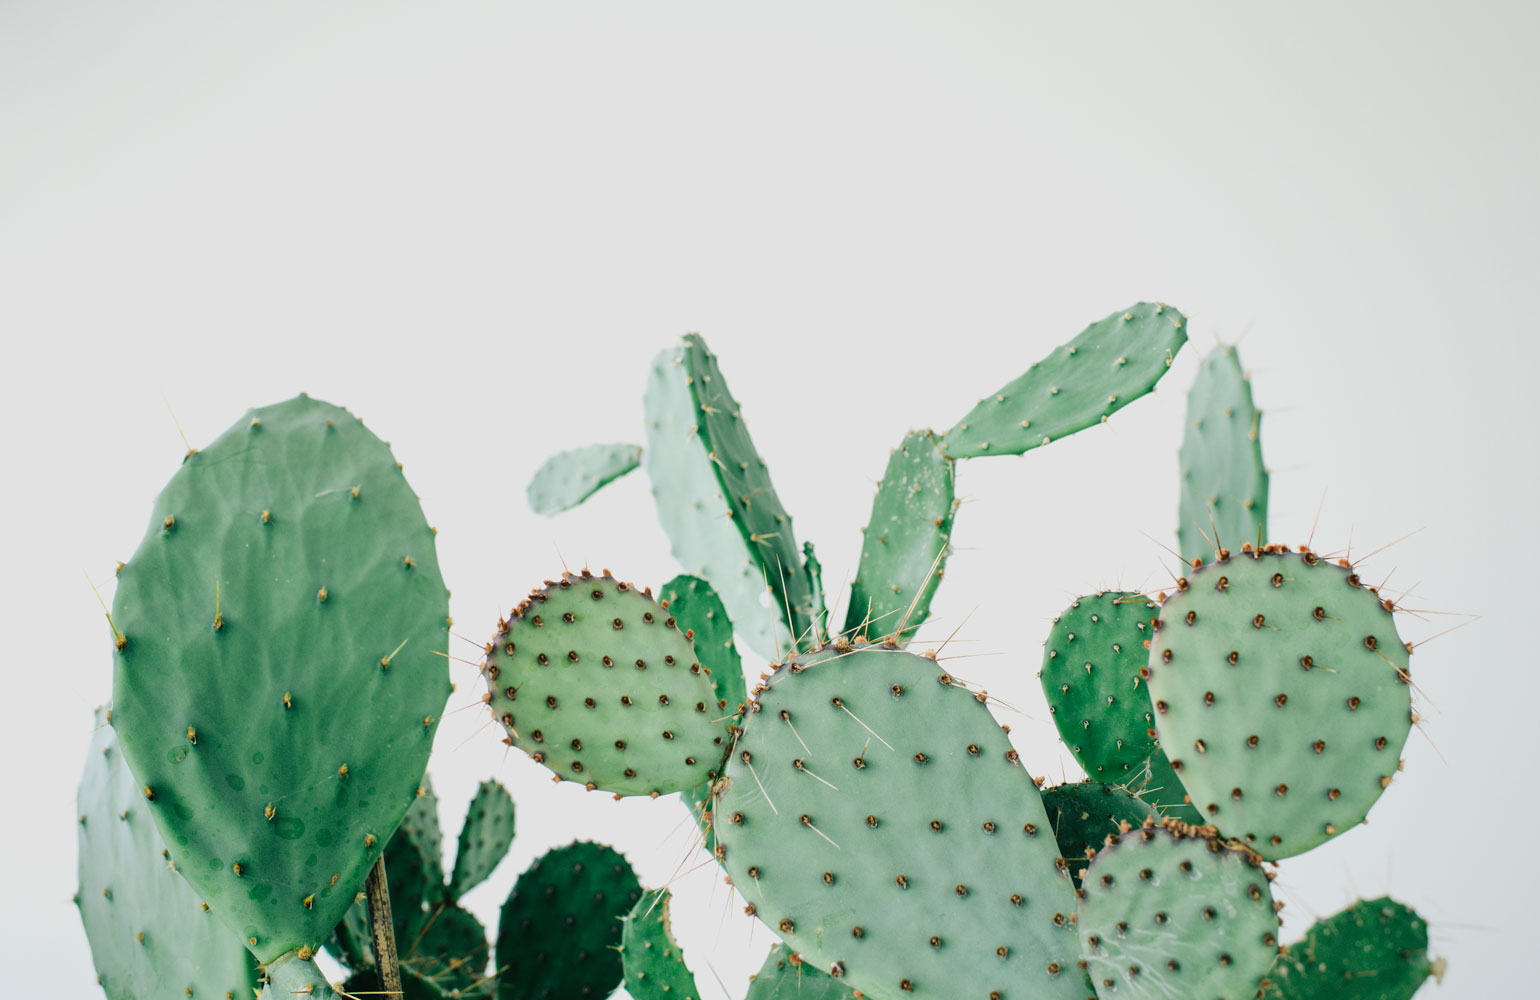 kaktus store, cactus shop by chiara stella home4